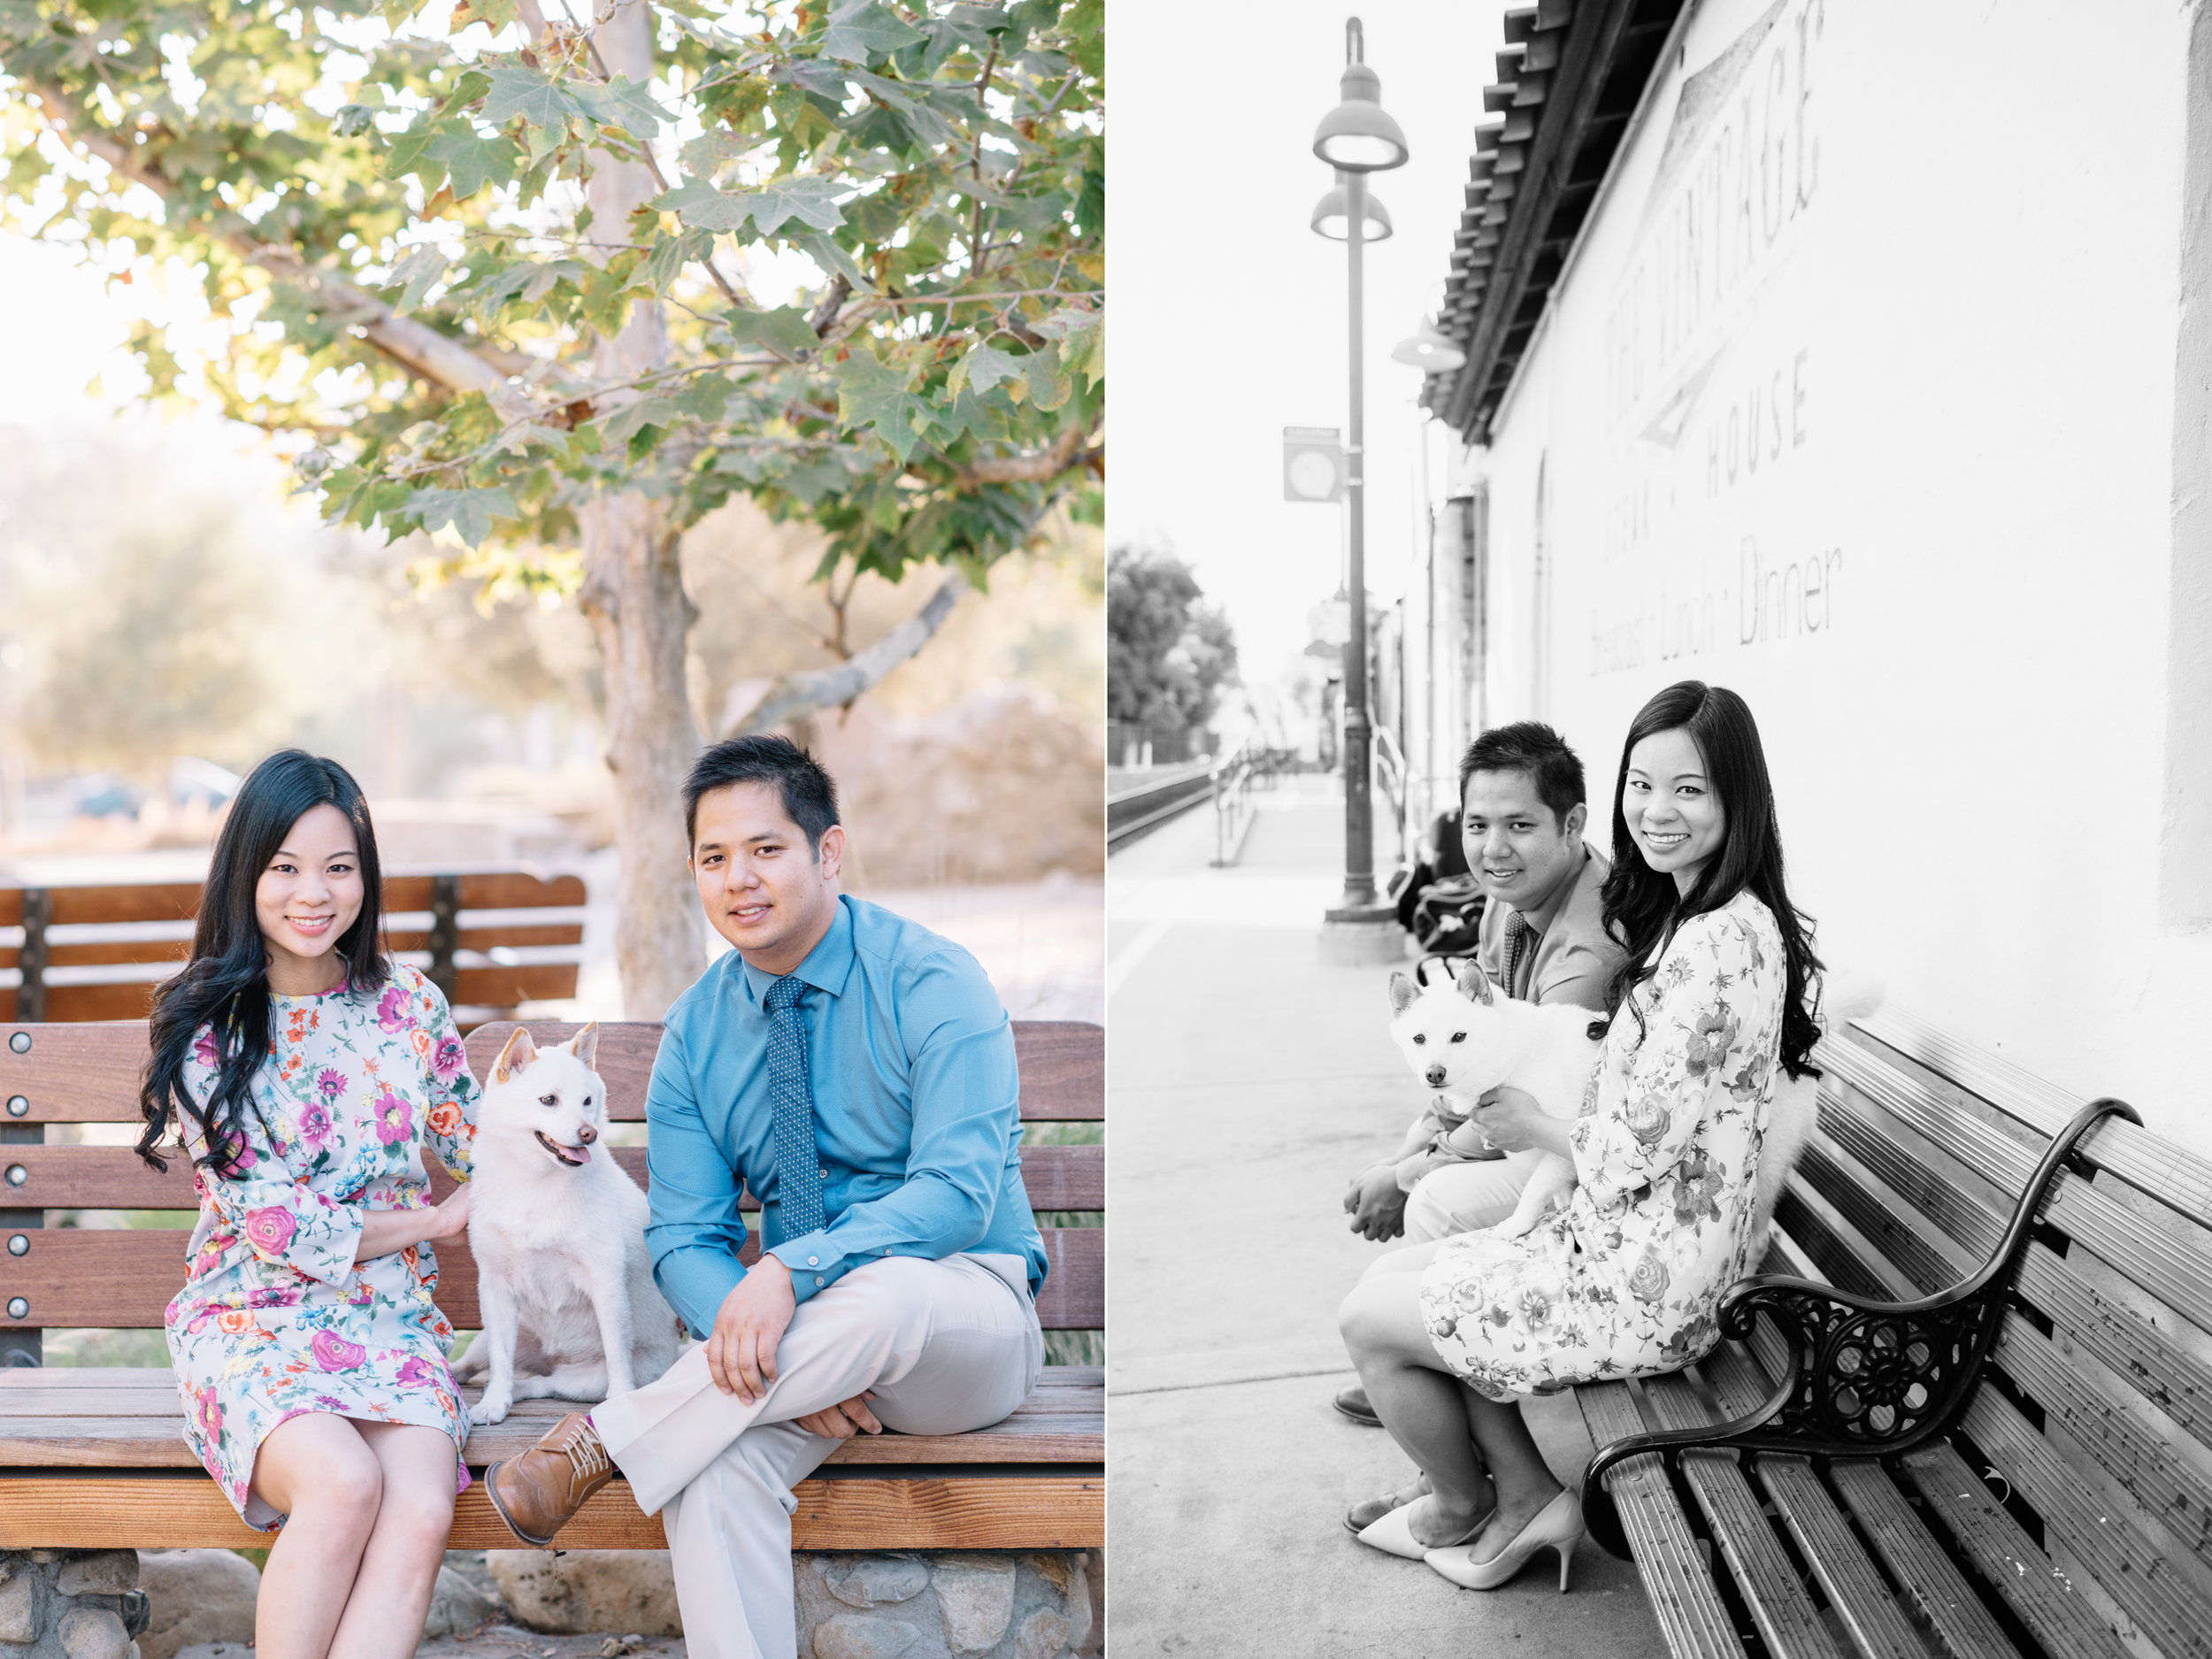 jennifer-jayn-photography-san-juan-capistrano-engagement-session-02.jpg